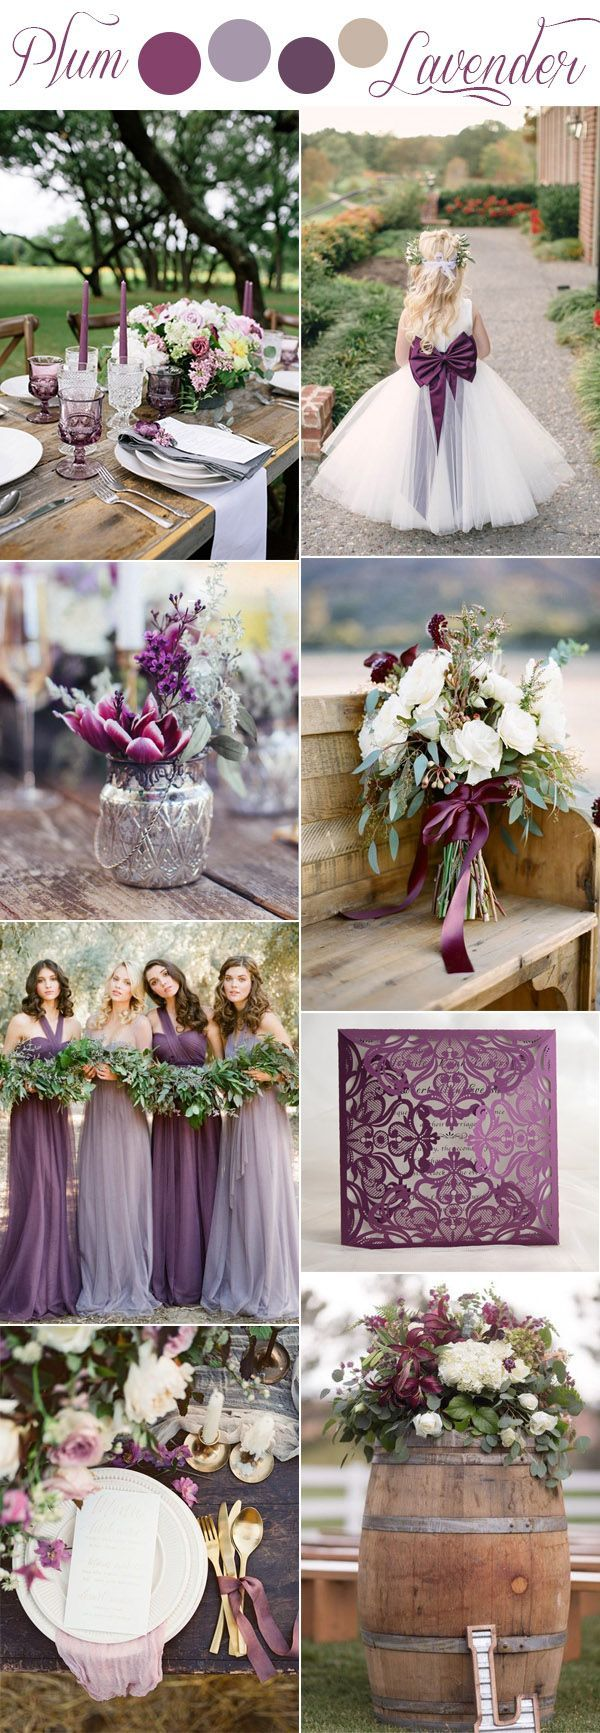 Plum Lavender And Lilac Shades Of Purple Romantic Rustic Wedding